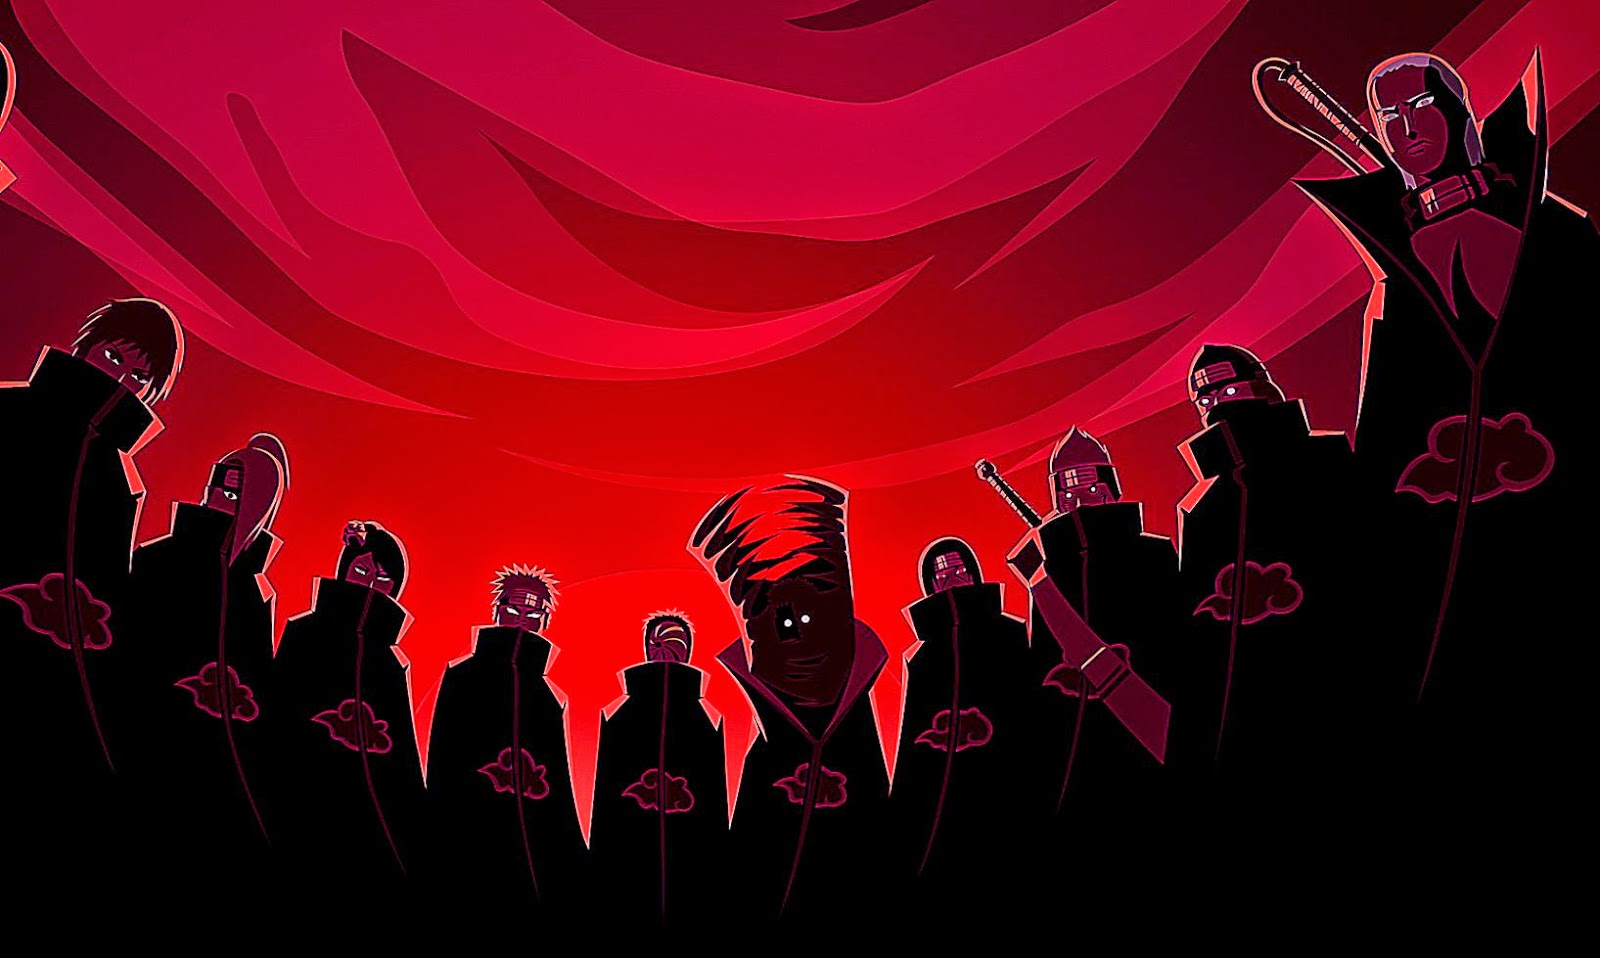 akatsuki wallpaper,red,event,font,crowd,stage